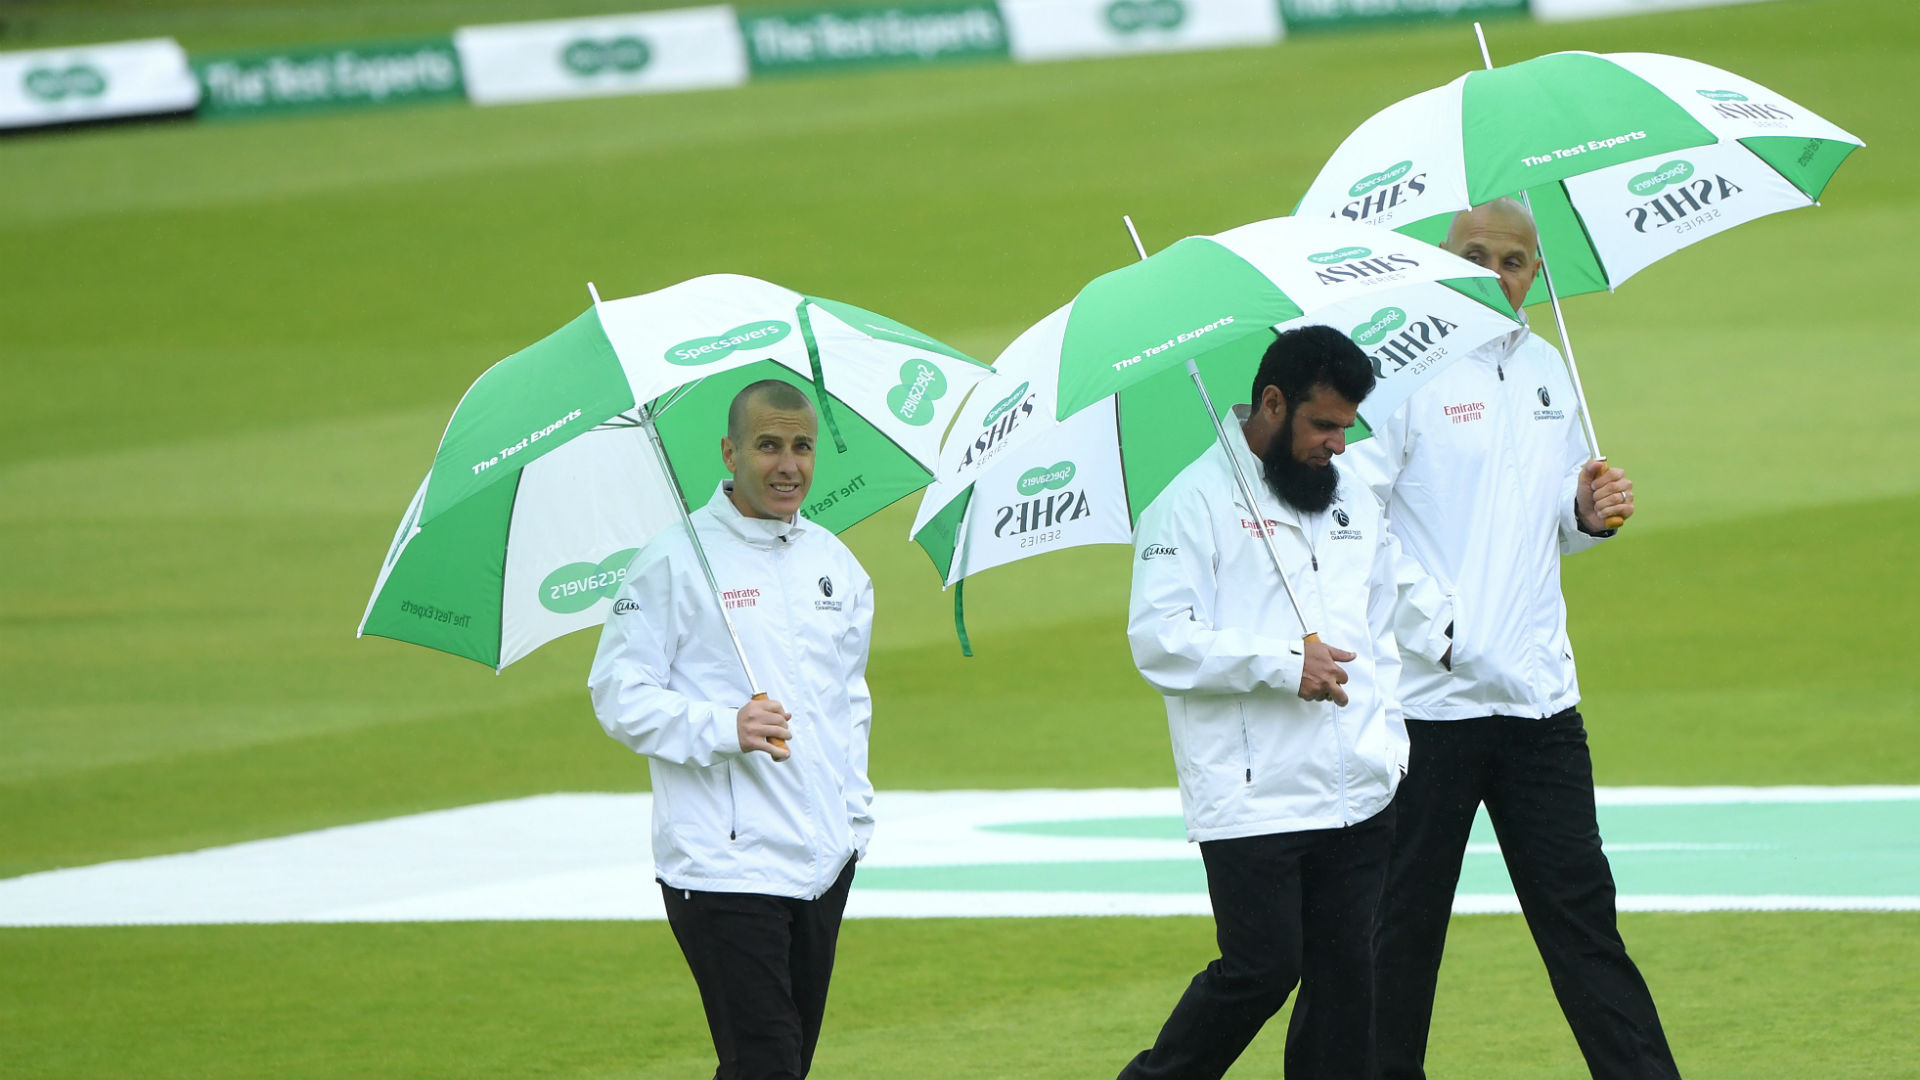 Persistent rain in London on Wednesday prevented England and Australia from starting the second Test at Lord's.